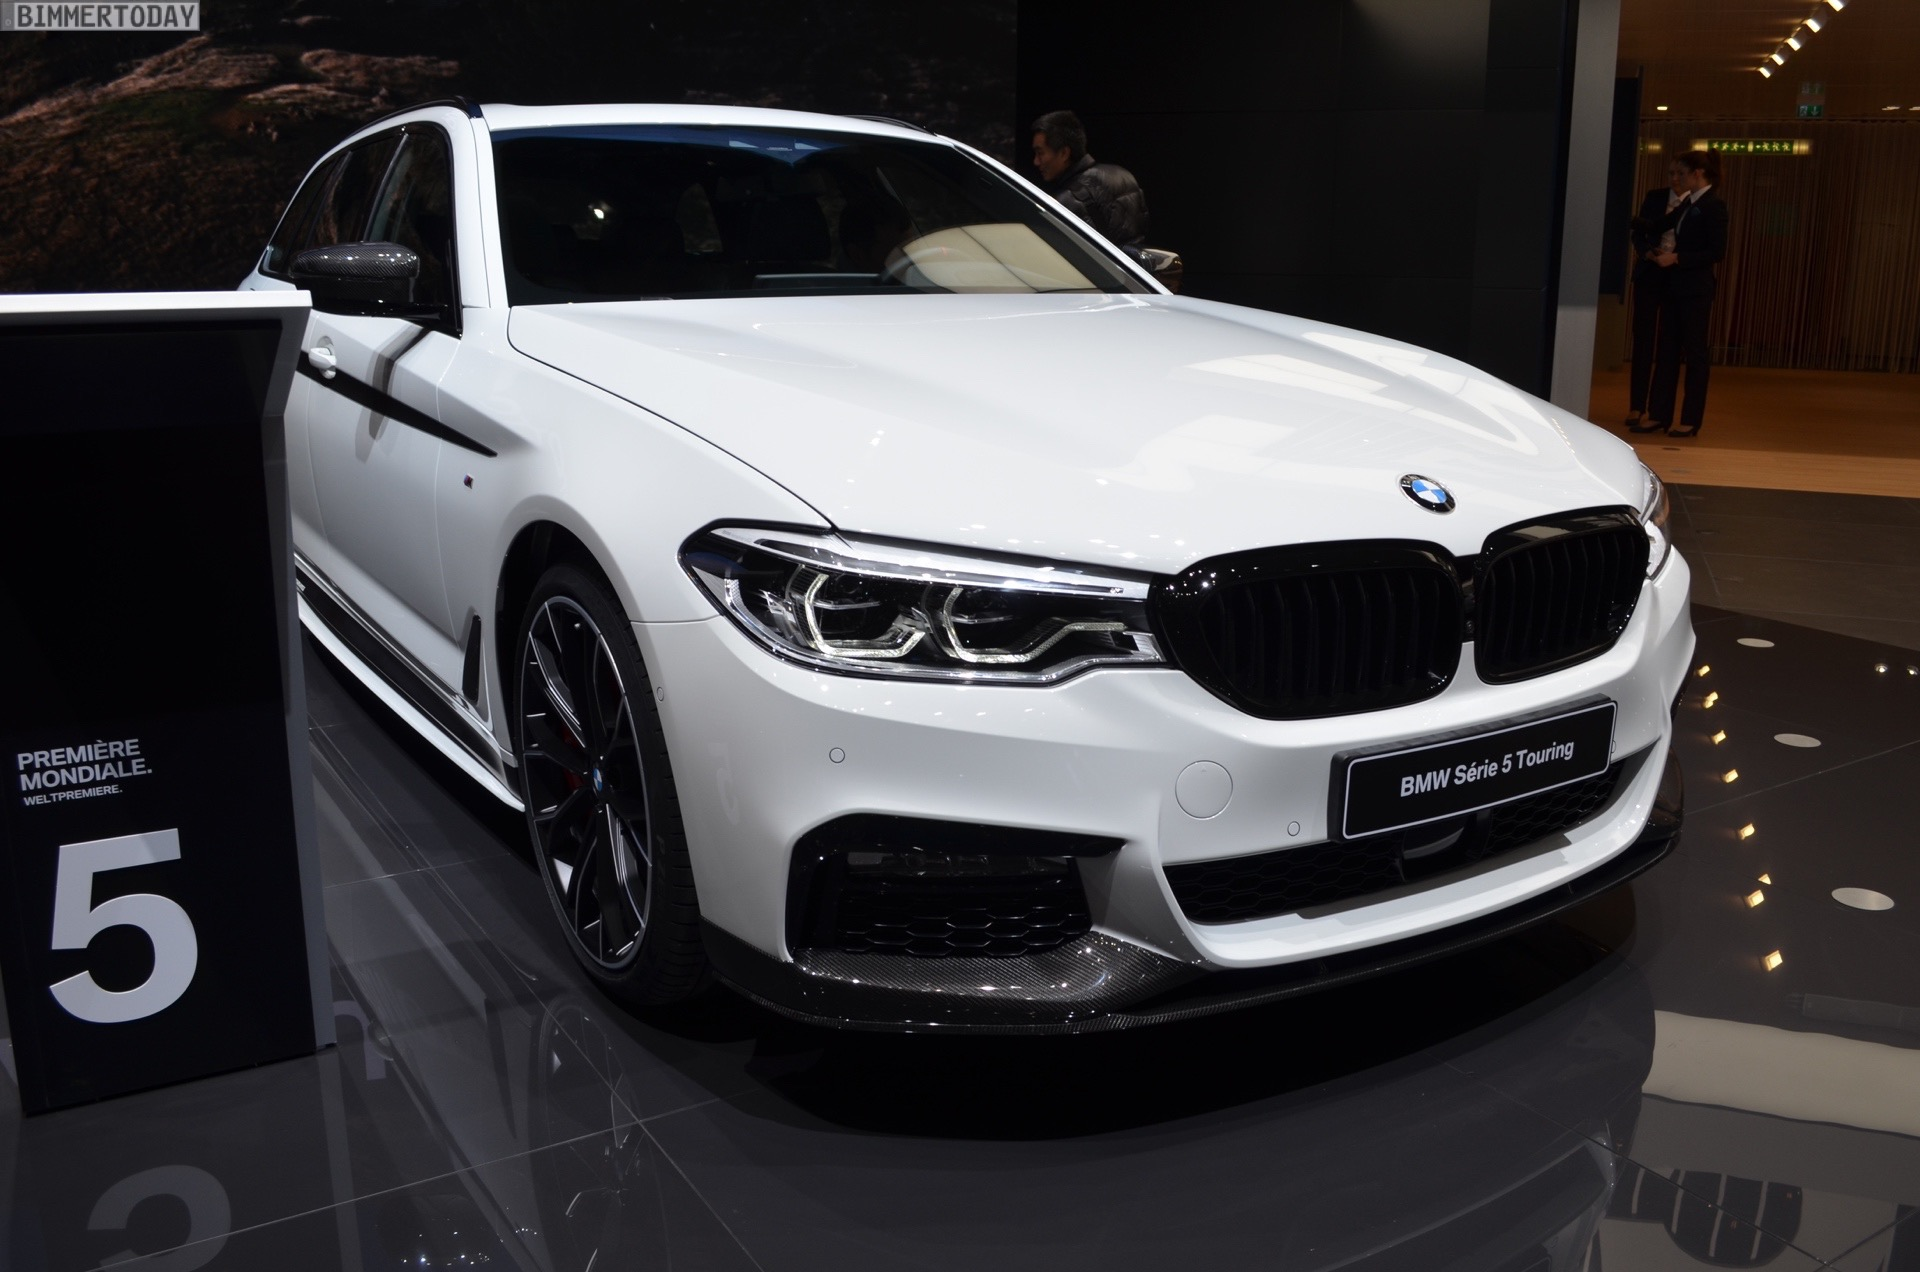 530d And Xdrive The Bmw M Performance Exhaust System Sel Was Developed Which Attracts Attention With Its Special Stainless Steel Sport Ler